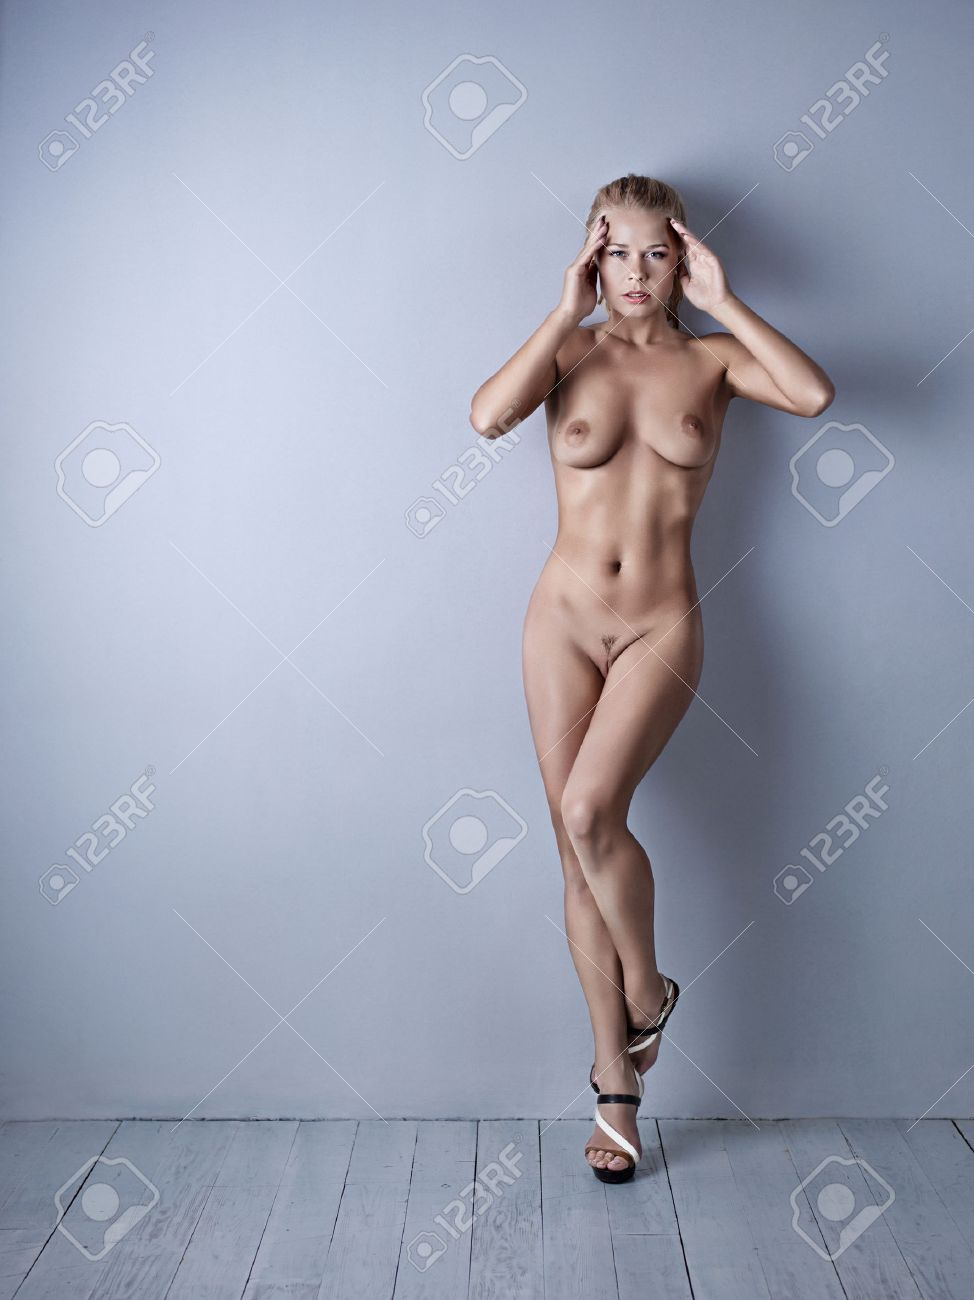 Nude woman girl photo picture